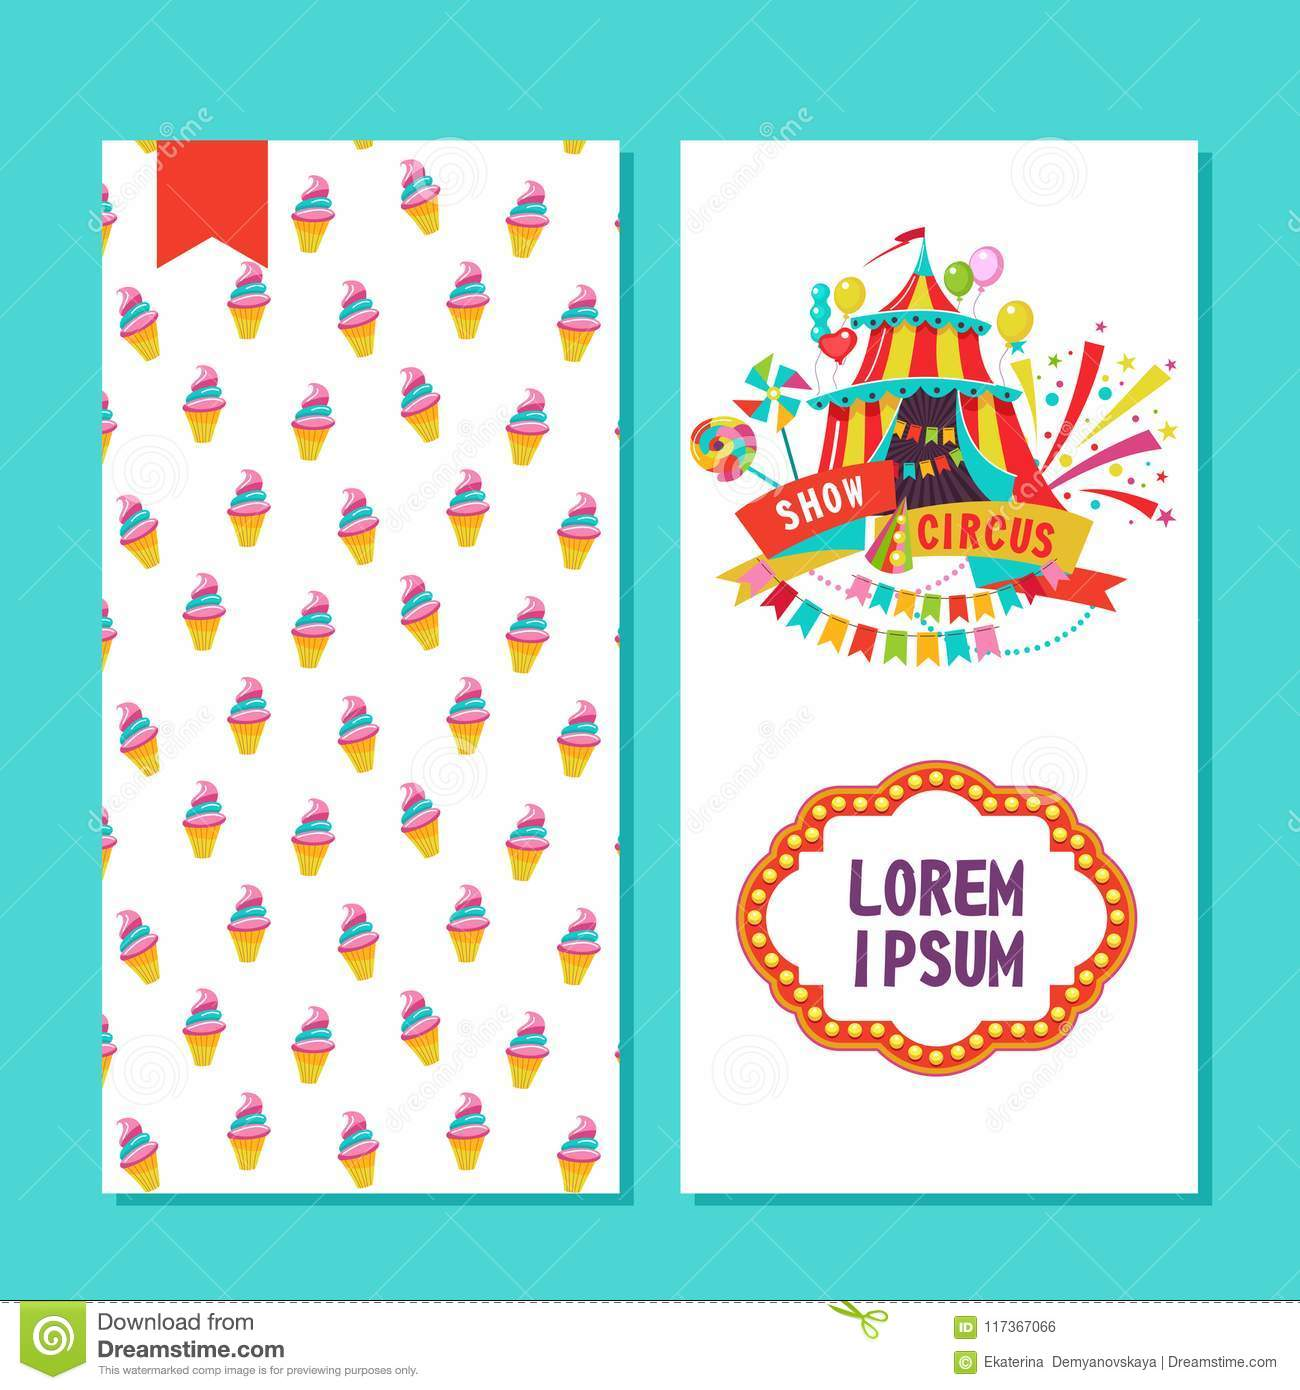 Circus performers two sides poster, flyer or invitation design.